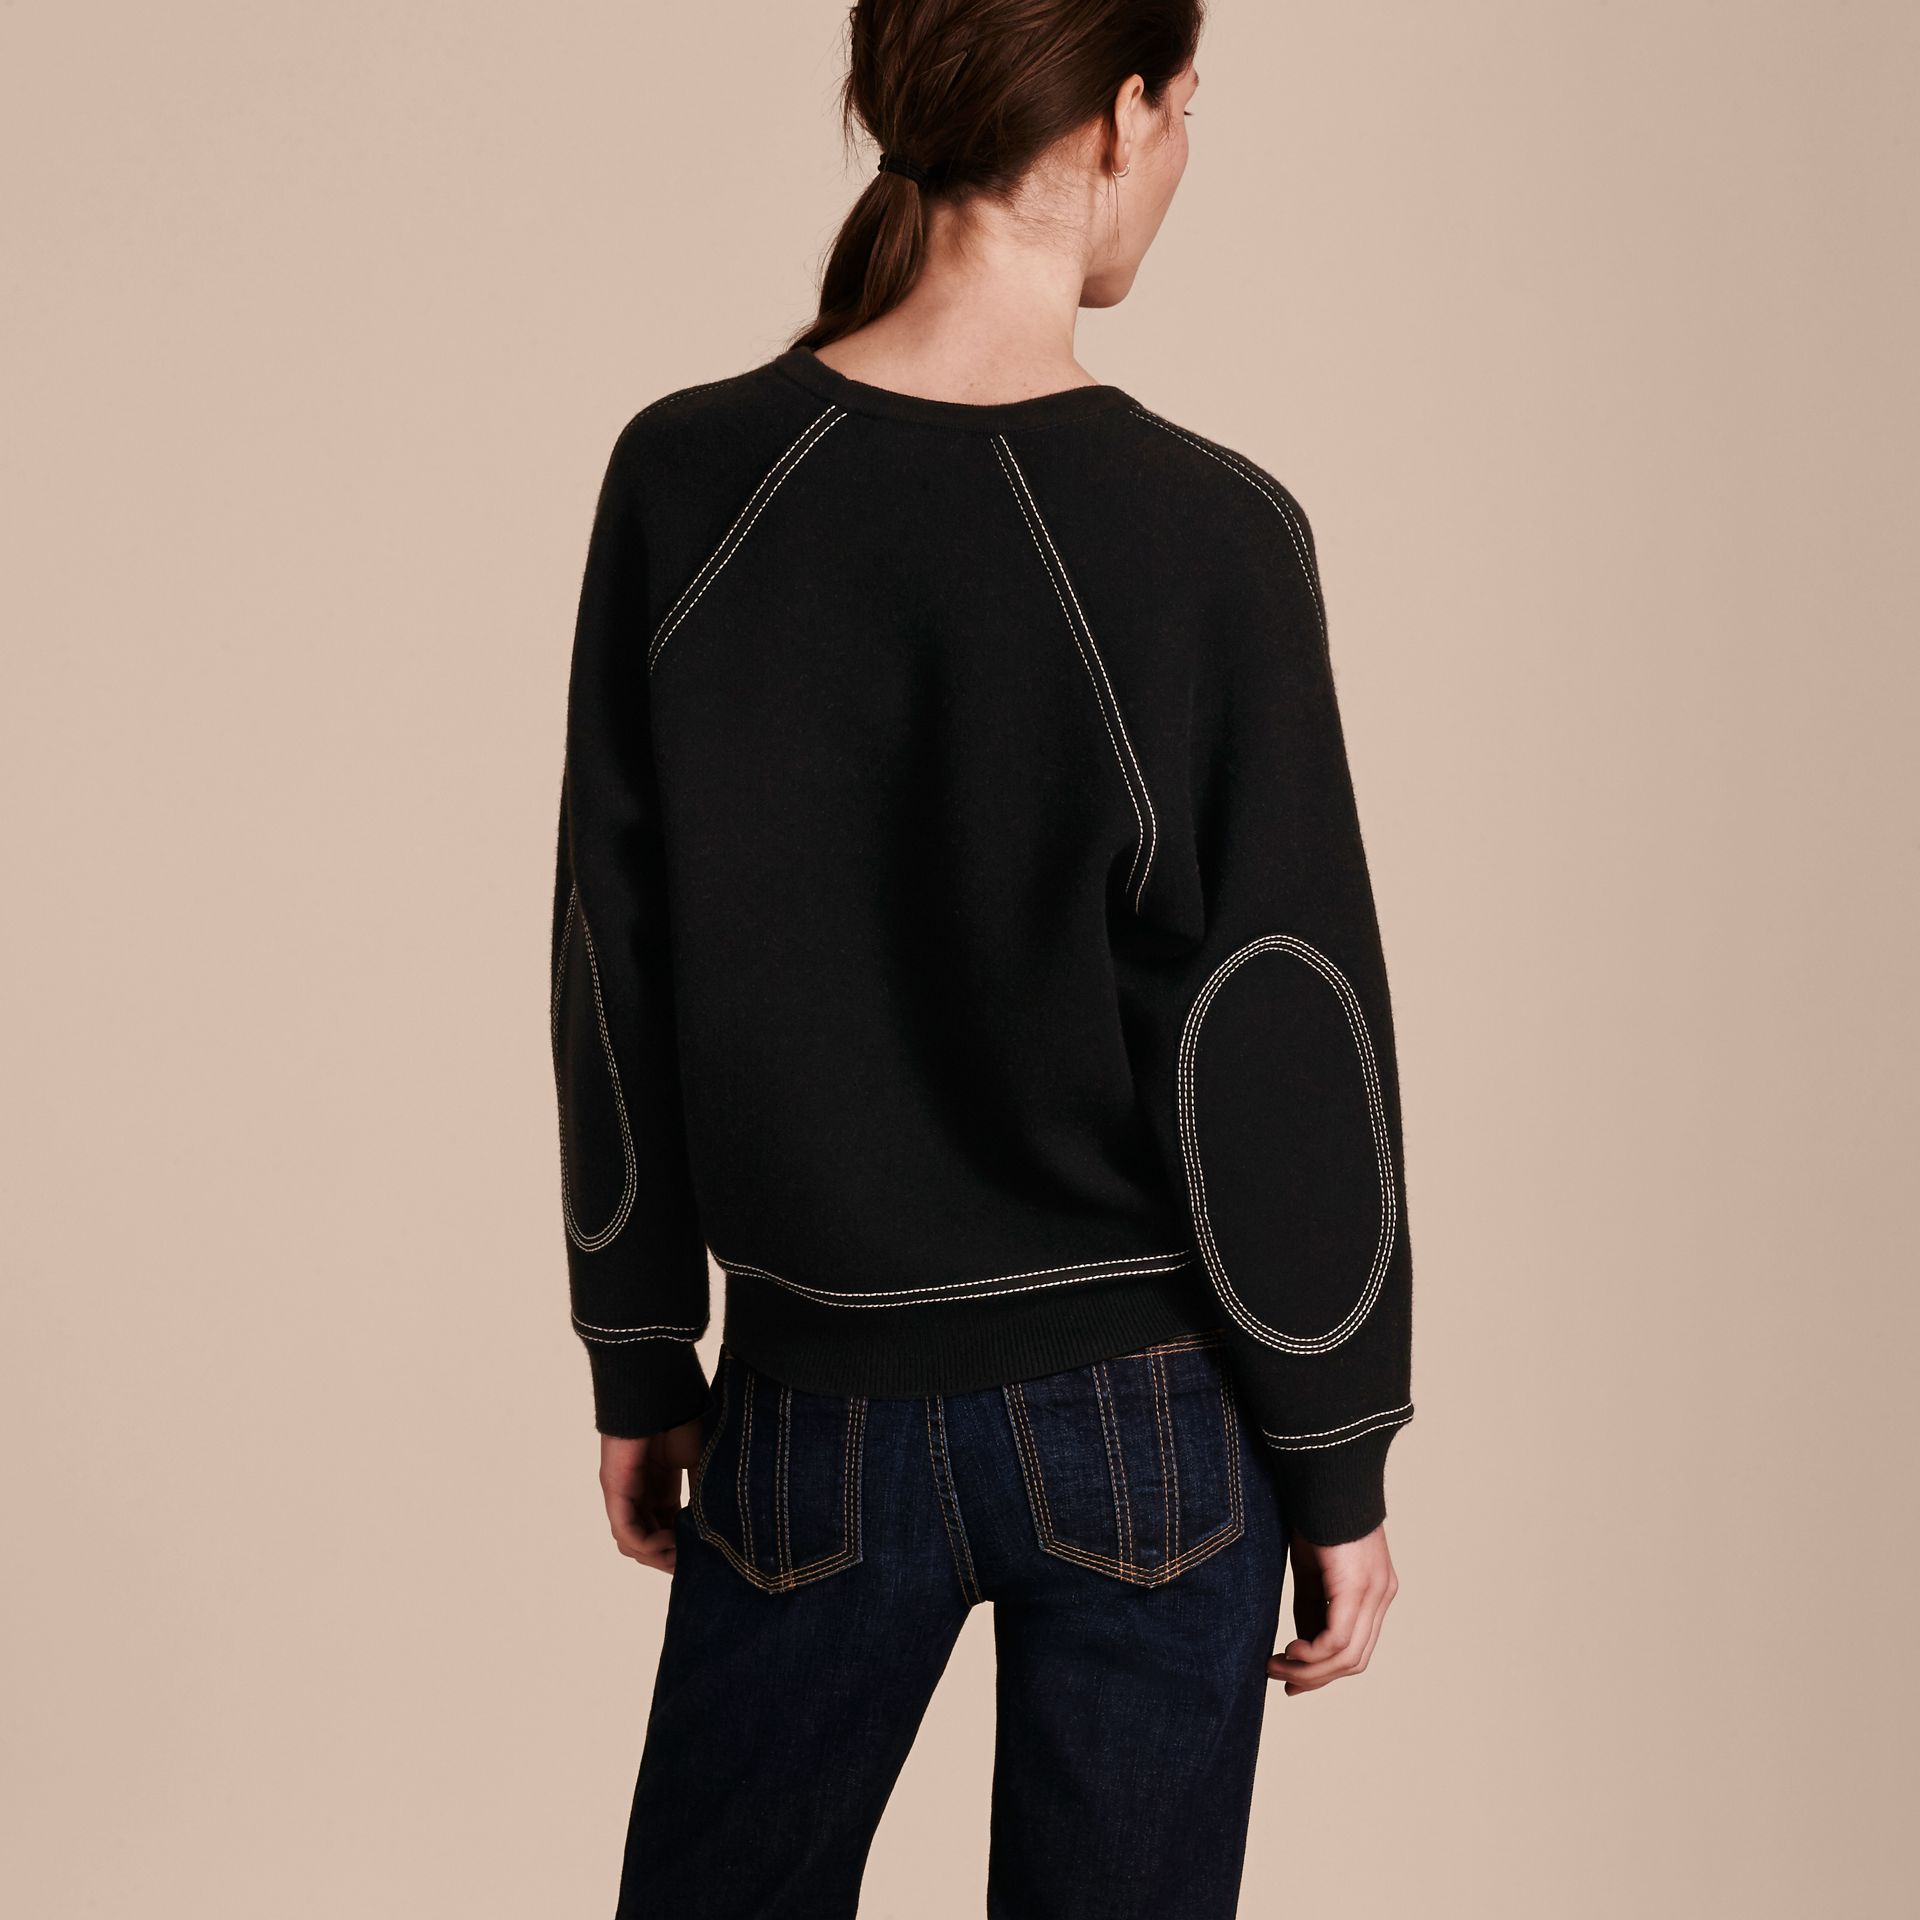 Topstitch Detail Wool Cashmere Blend Sweater in Black - Women | Burberry Australia - gallery image 3